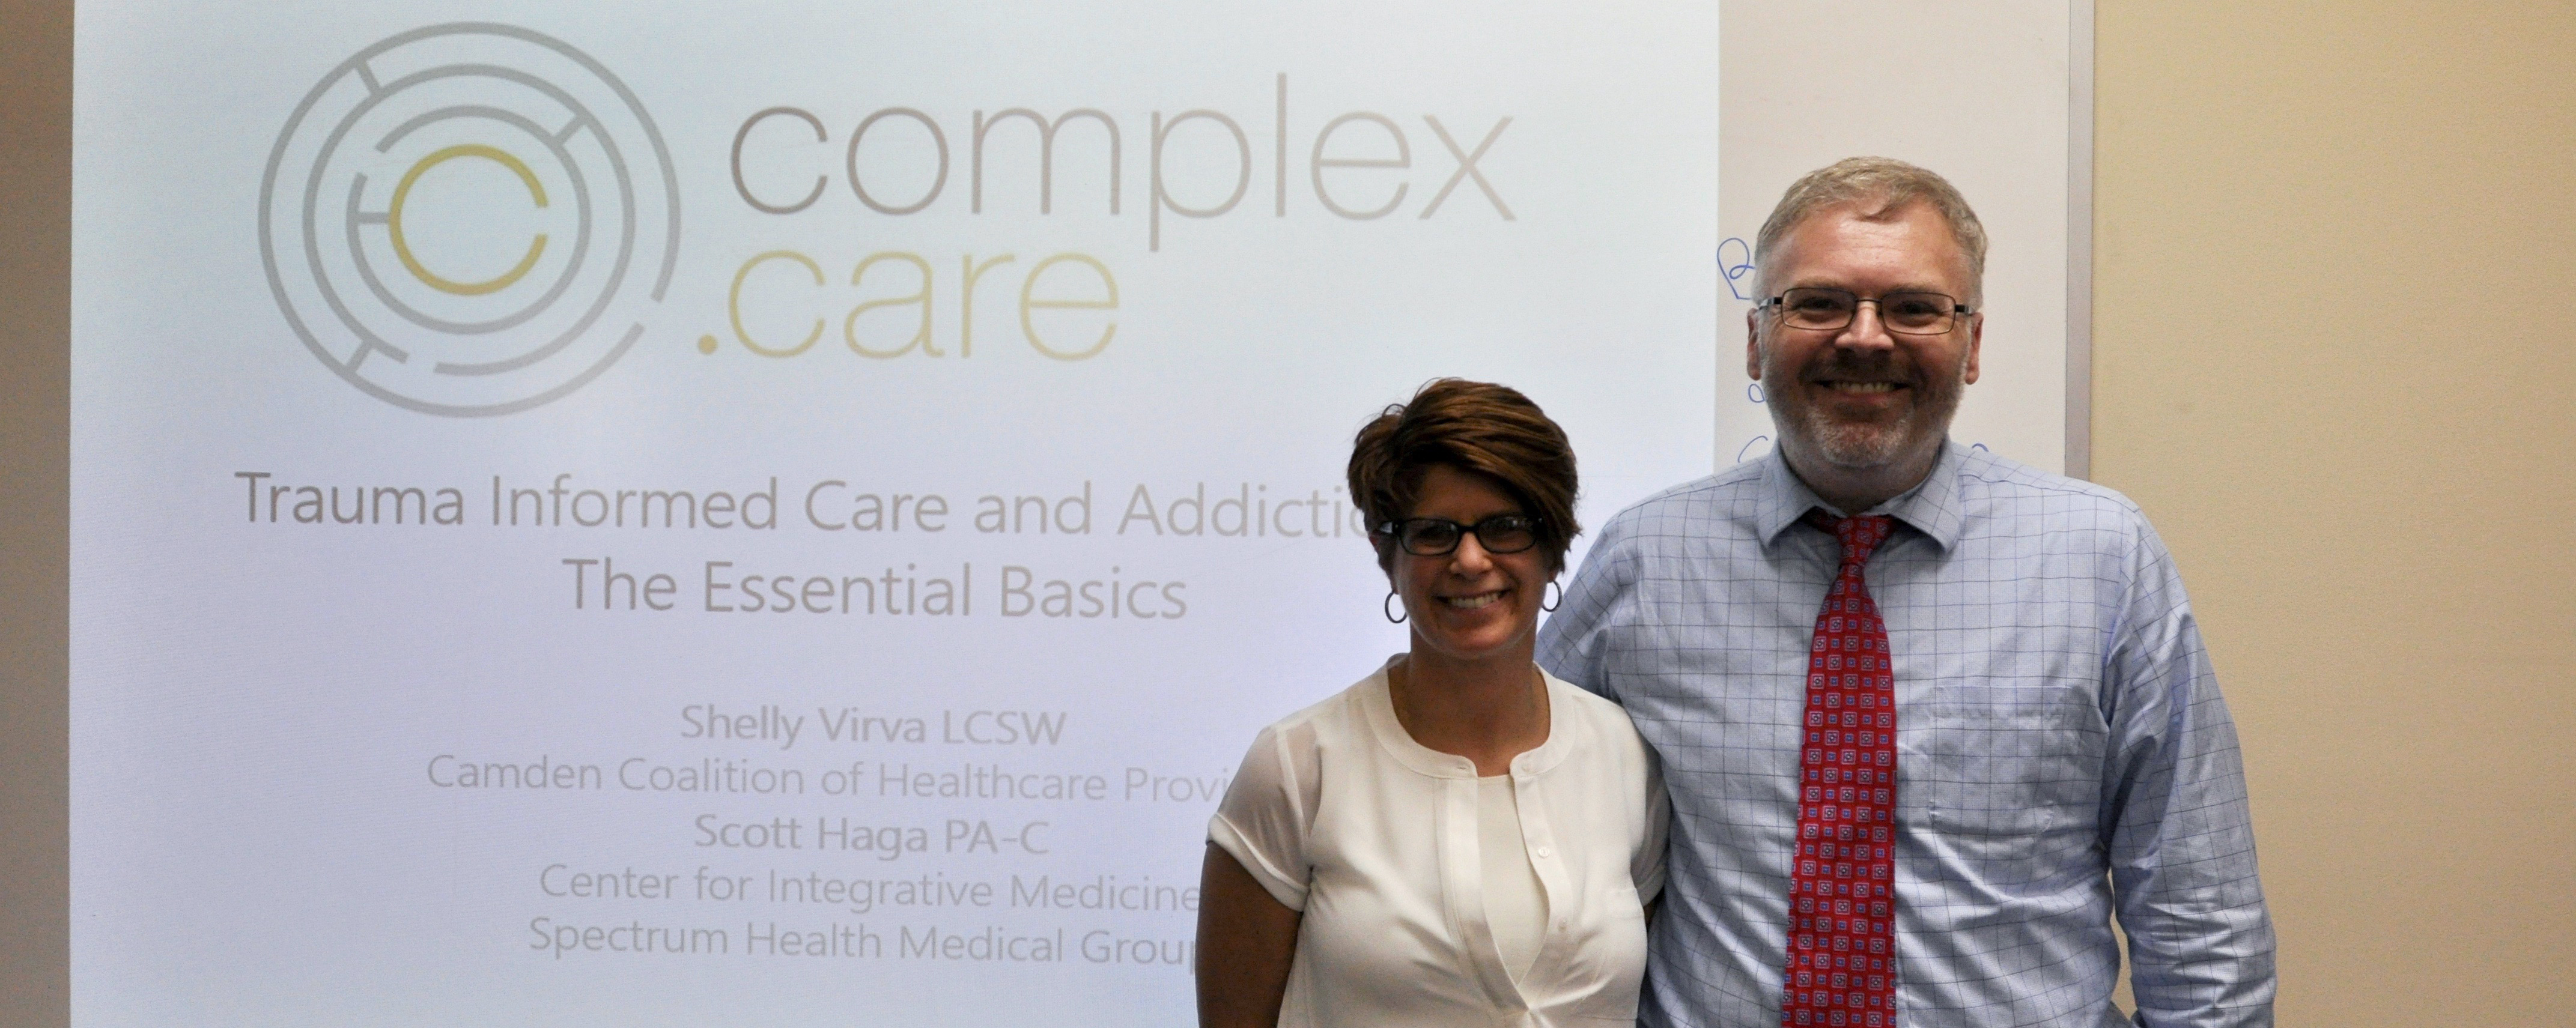 Shelly Virva and Scott Haga with their Addiction 101 training